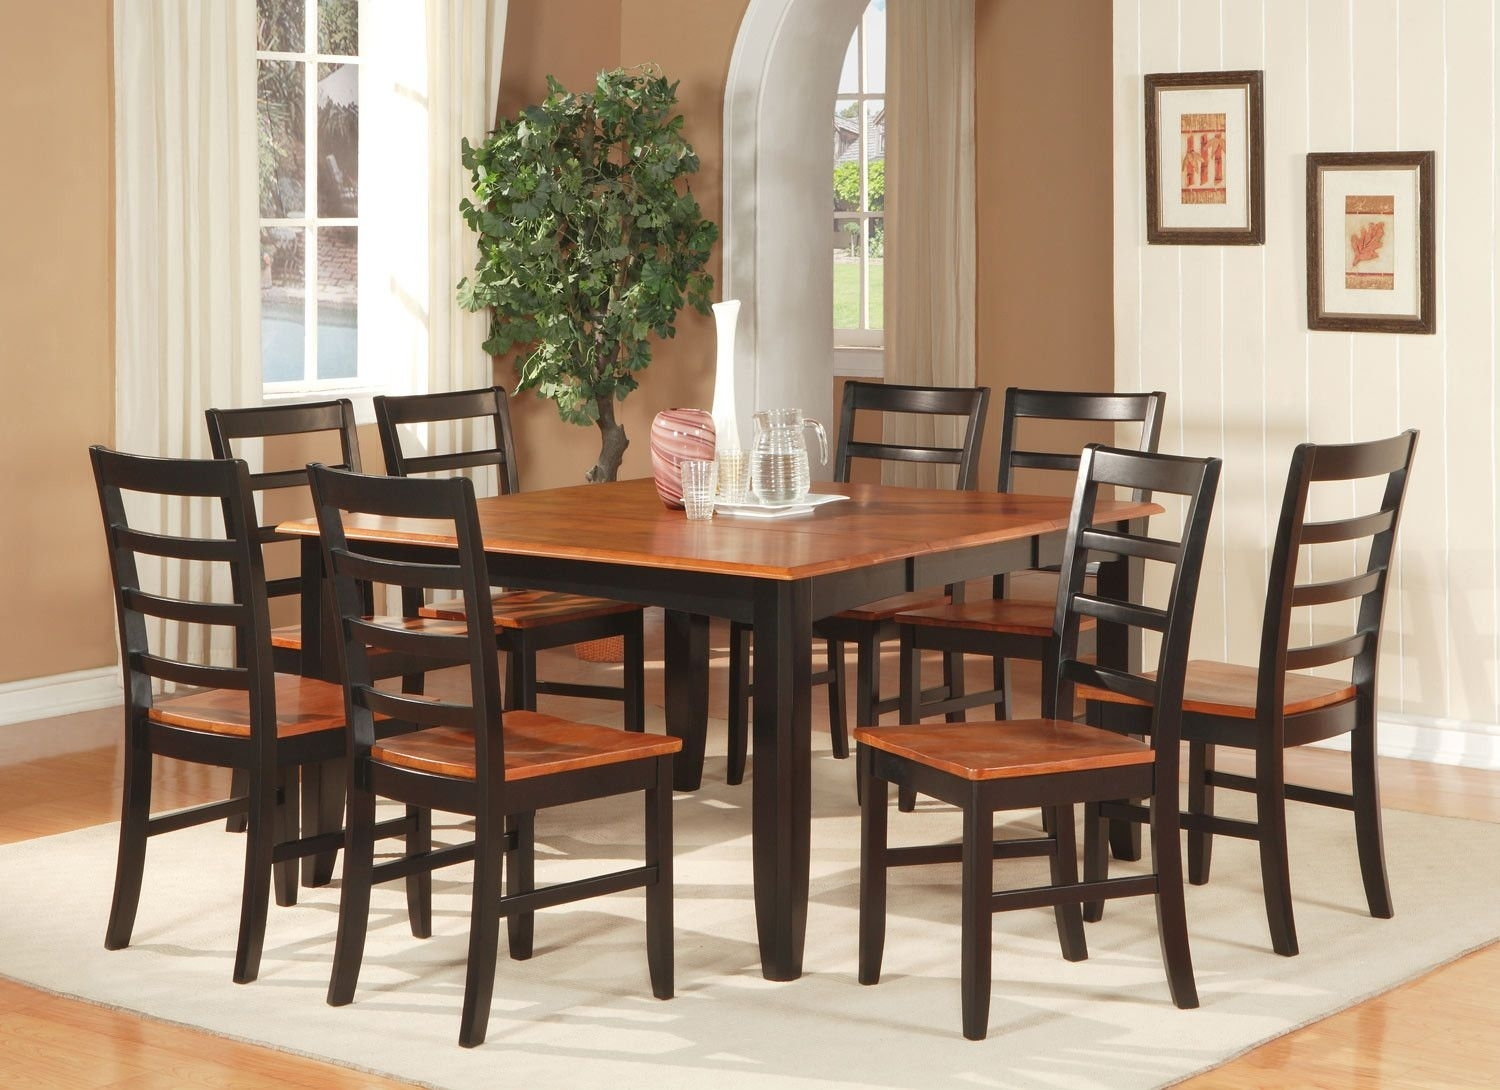 Parfait 7 Piece Dining Set In 2018 | New House | Pinterest Within Current Market 7 Piece Dining Sets With Side Chairs (Image 15 of 20)